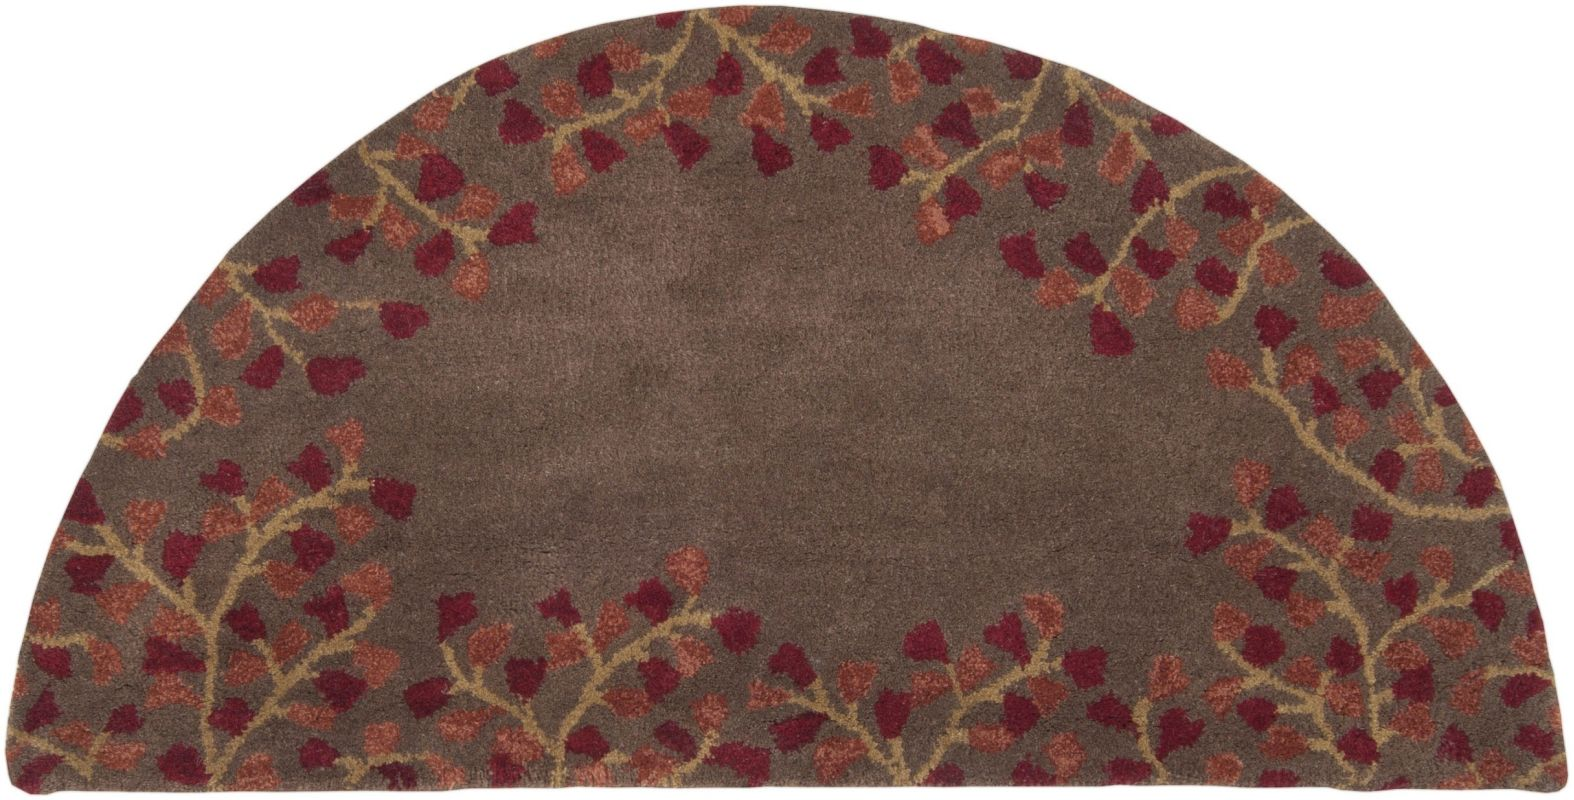 Surya ATH-5003 Athena Hand Tufted Wool Rug Red 3 x 12 Home Decor Rugs